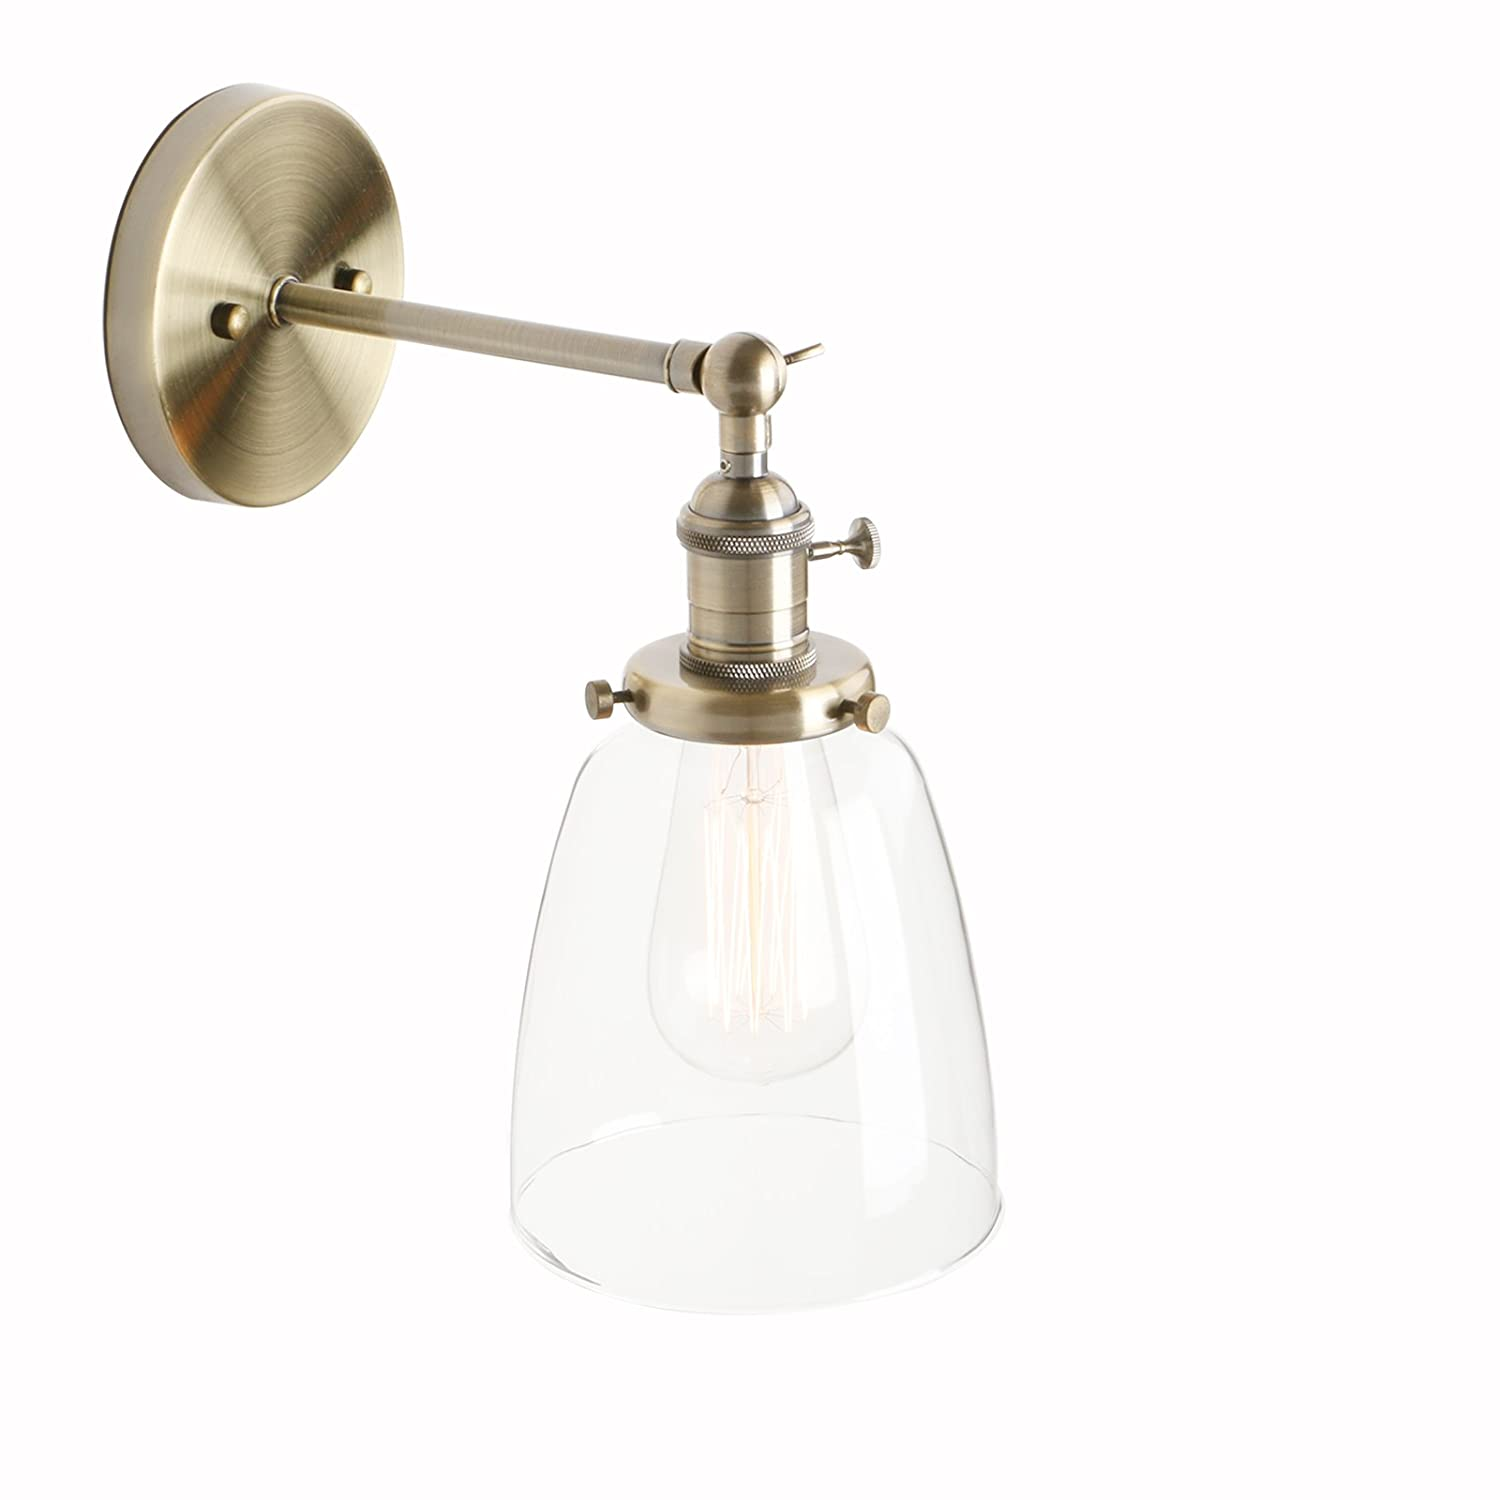 "Pathson Industrial Vintage Modern Wall Light Fittings Loft Bar Kitchen Sconce Wall Lamp Light Fixture with 5.5"" Clear Glass Lampshade E27 (Brushed)"